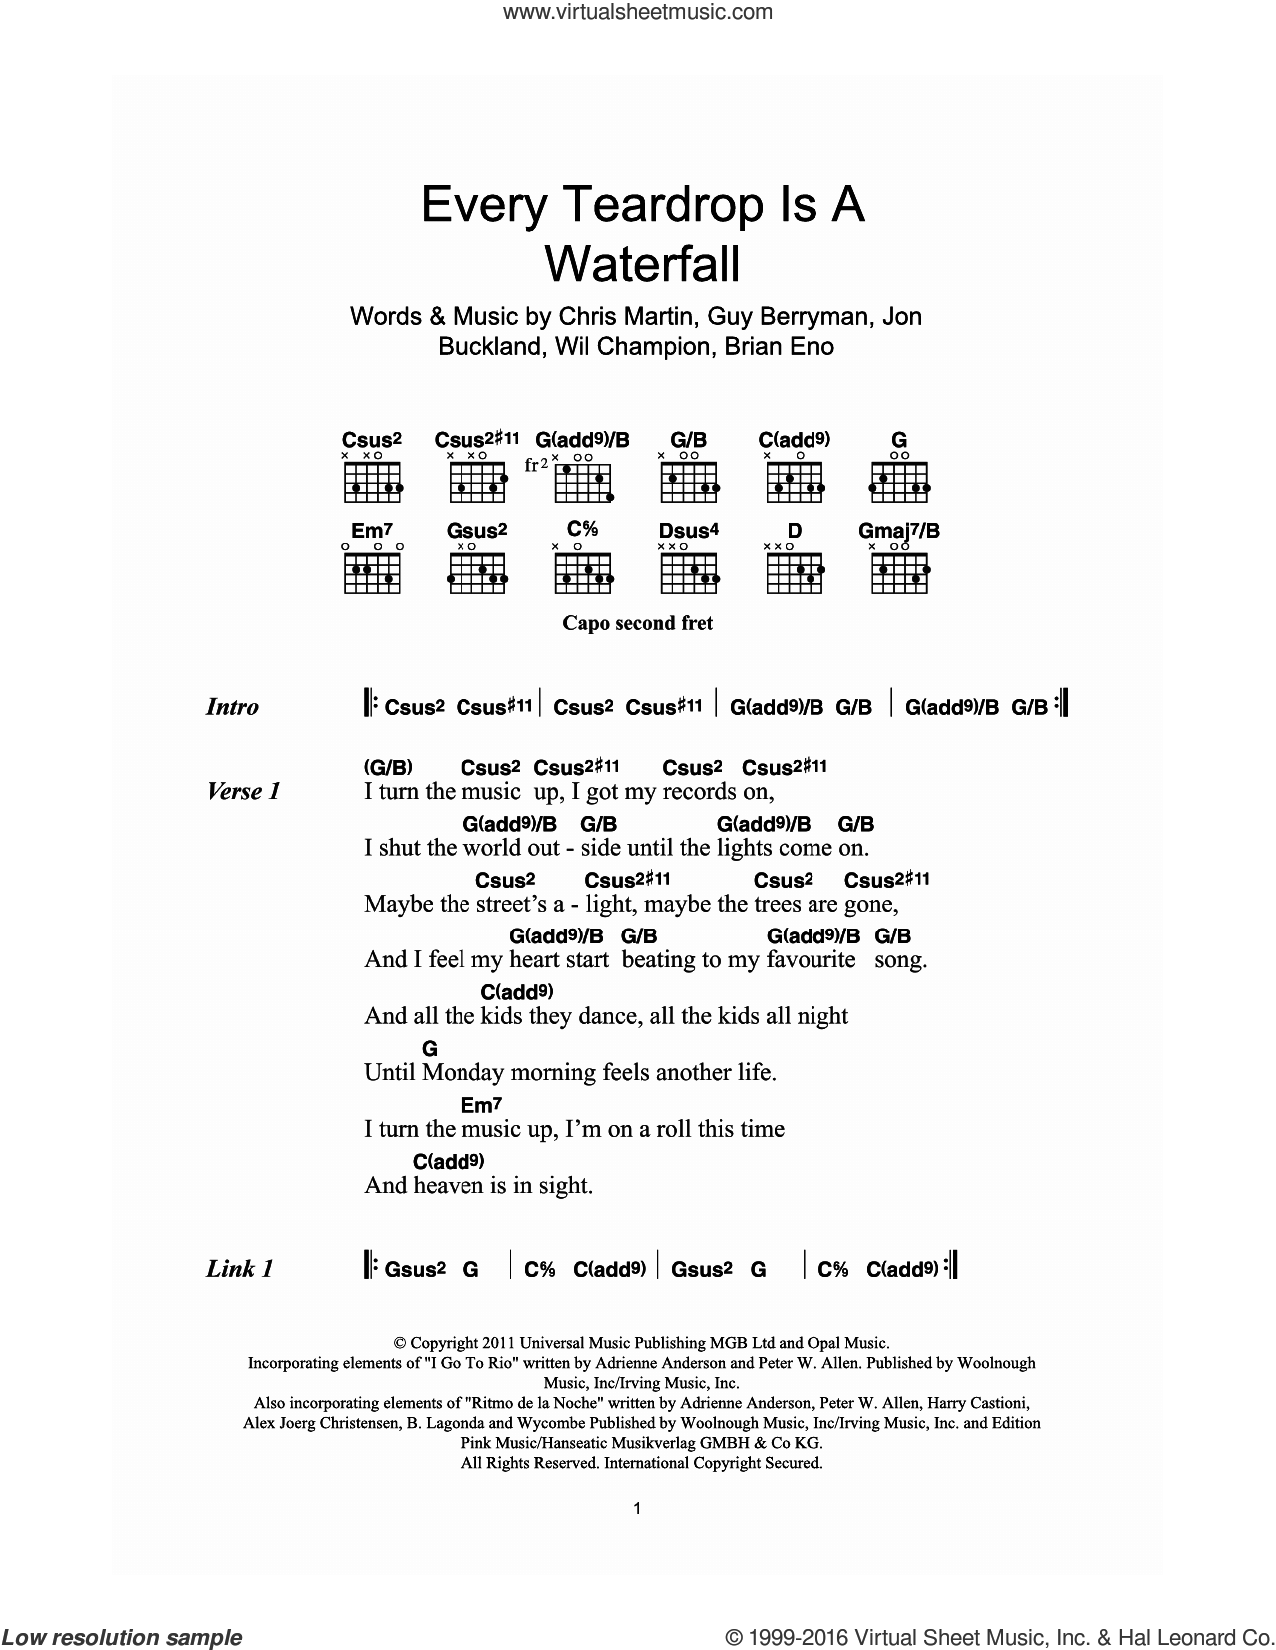 Every Teardrop Is A Waterfall sheet music for guitar (chords) by Coldplay, Adrienne Anderson, Brian Eno, Chris Martin, Guy Berryman, Jonny Buckland, Peter Allen and Will Champion, intermediate skill level